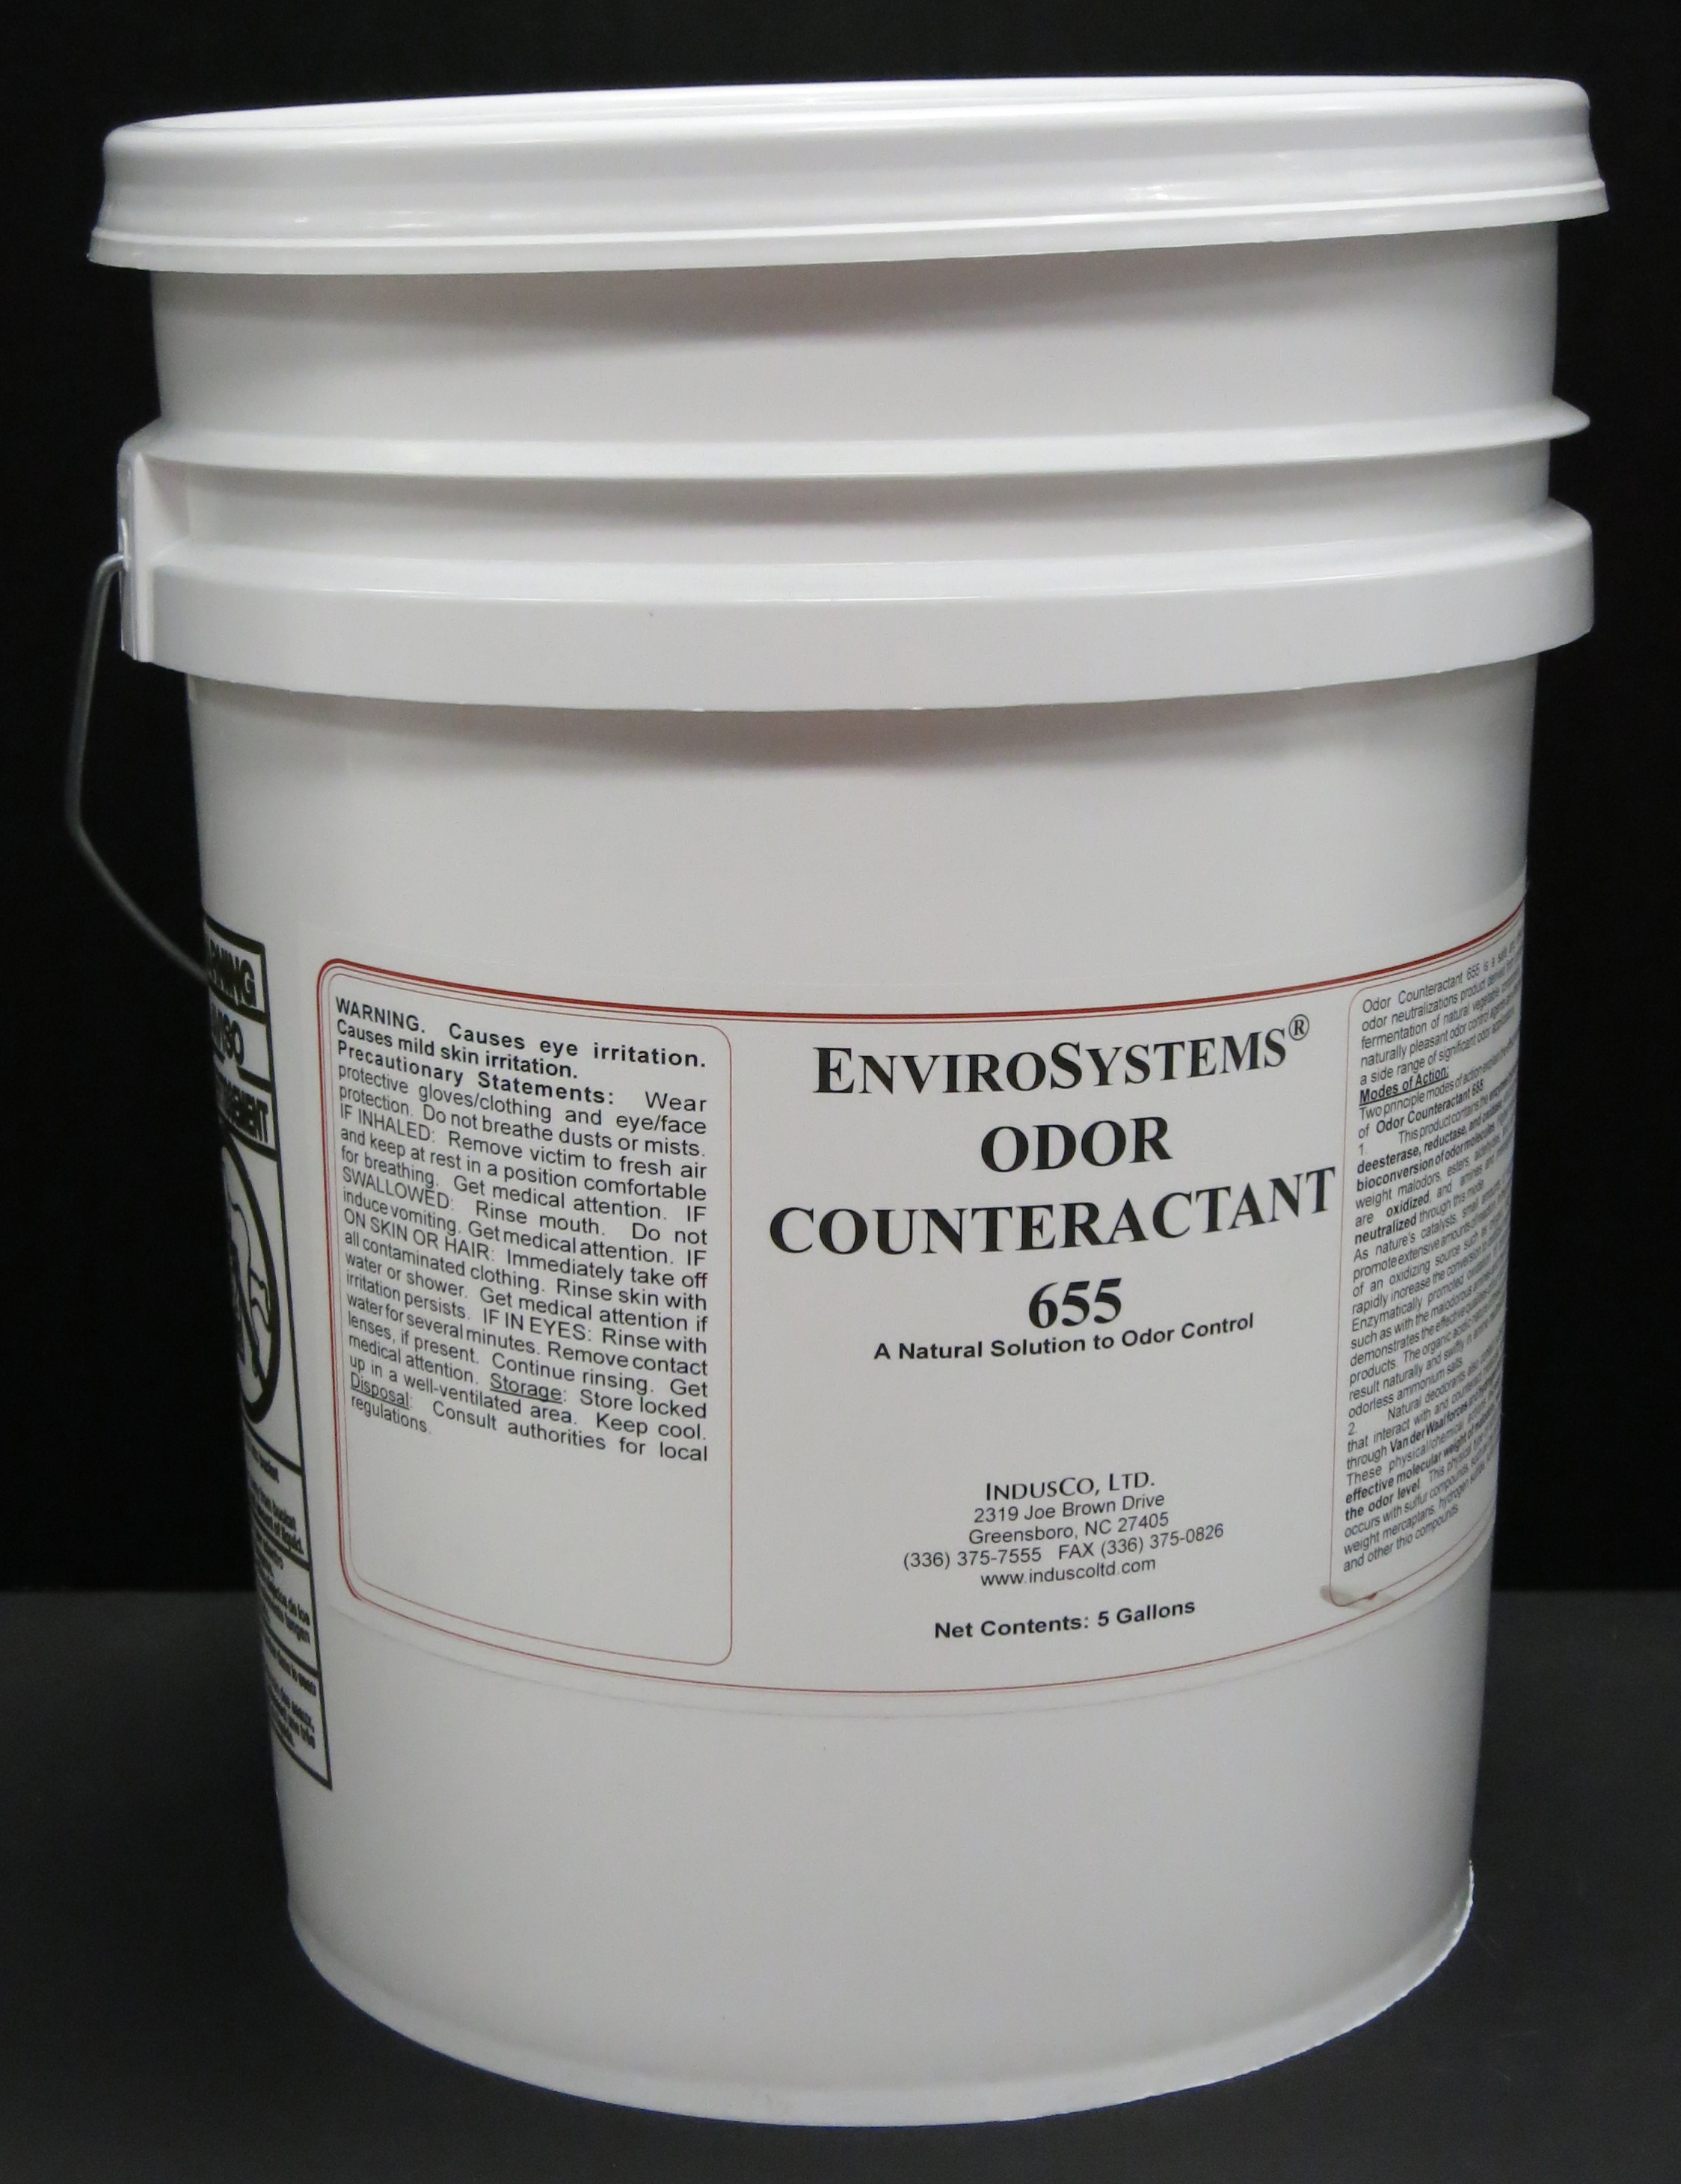 Odor Counteractant 655